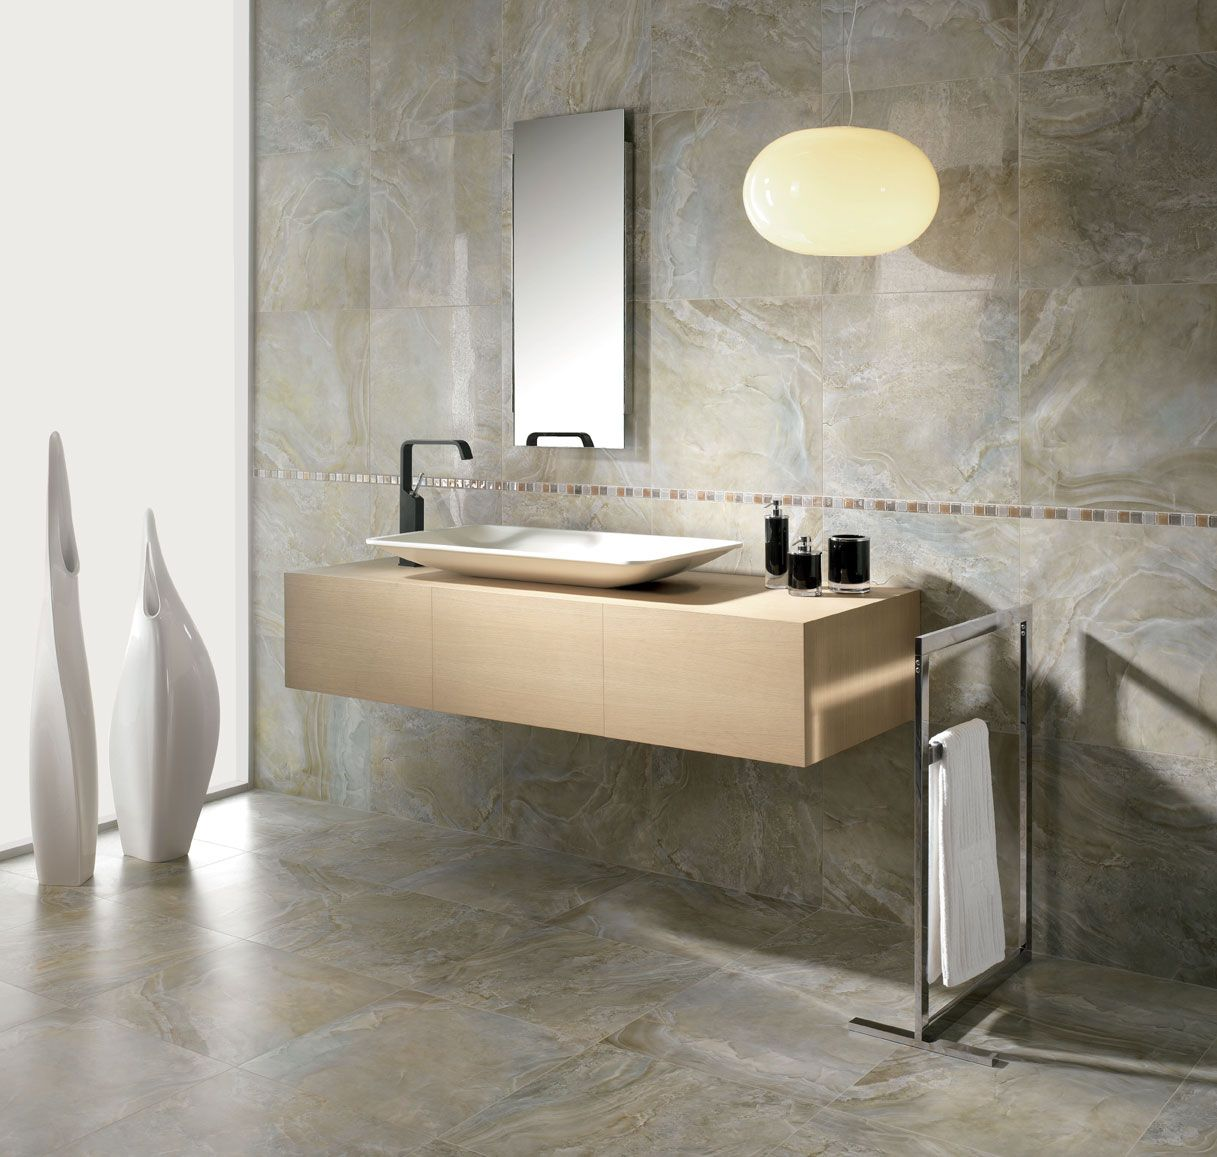 Bathroom Design Surprising Pretty Neat Marble Interior Modern Art Deco Style Washbasin With Minimalist Fashion Mirror And Rounded Hanging